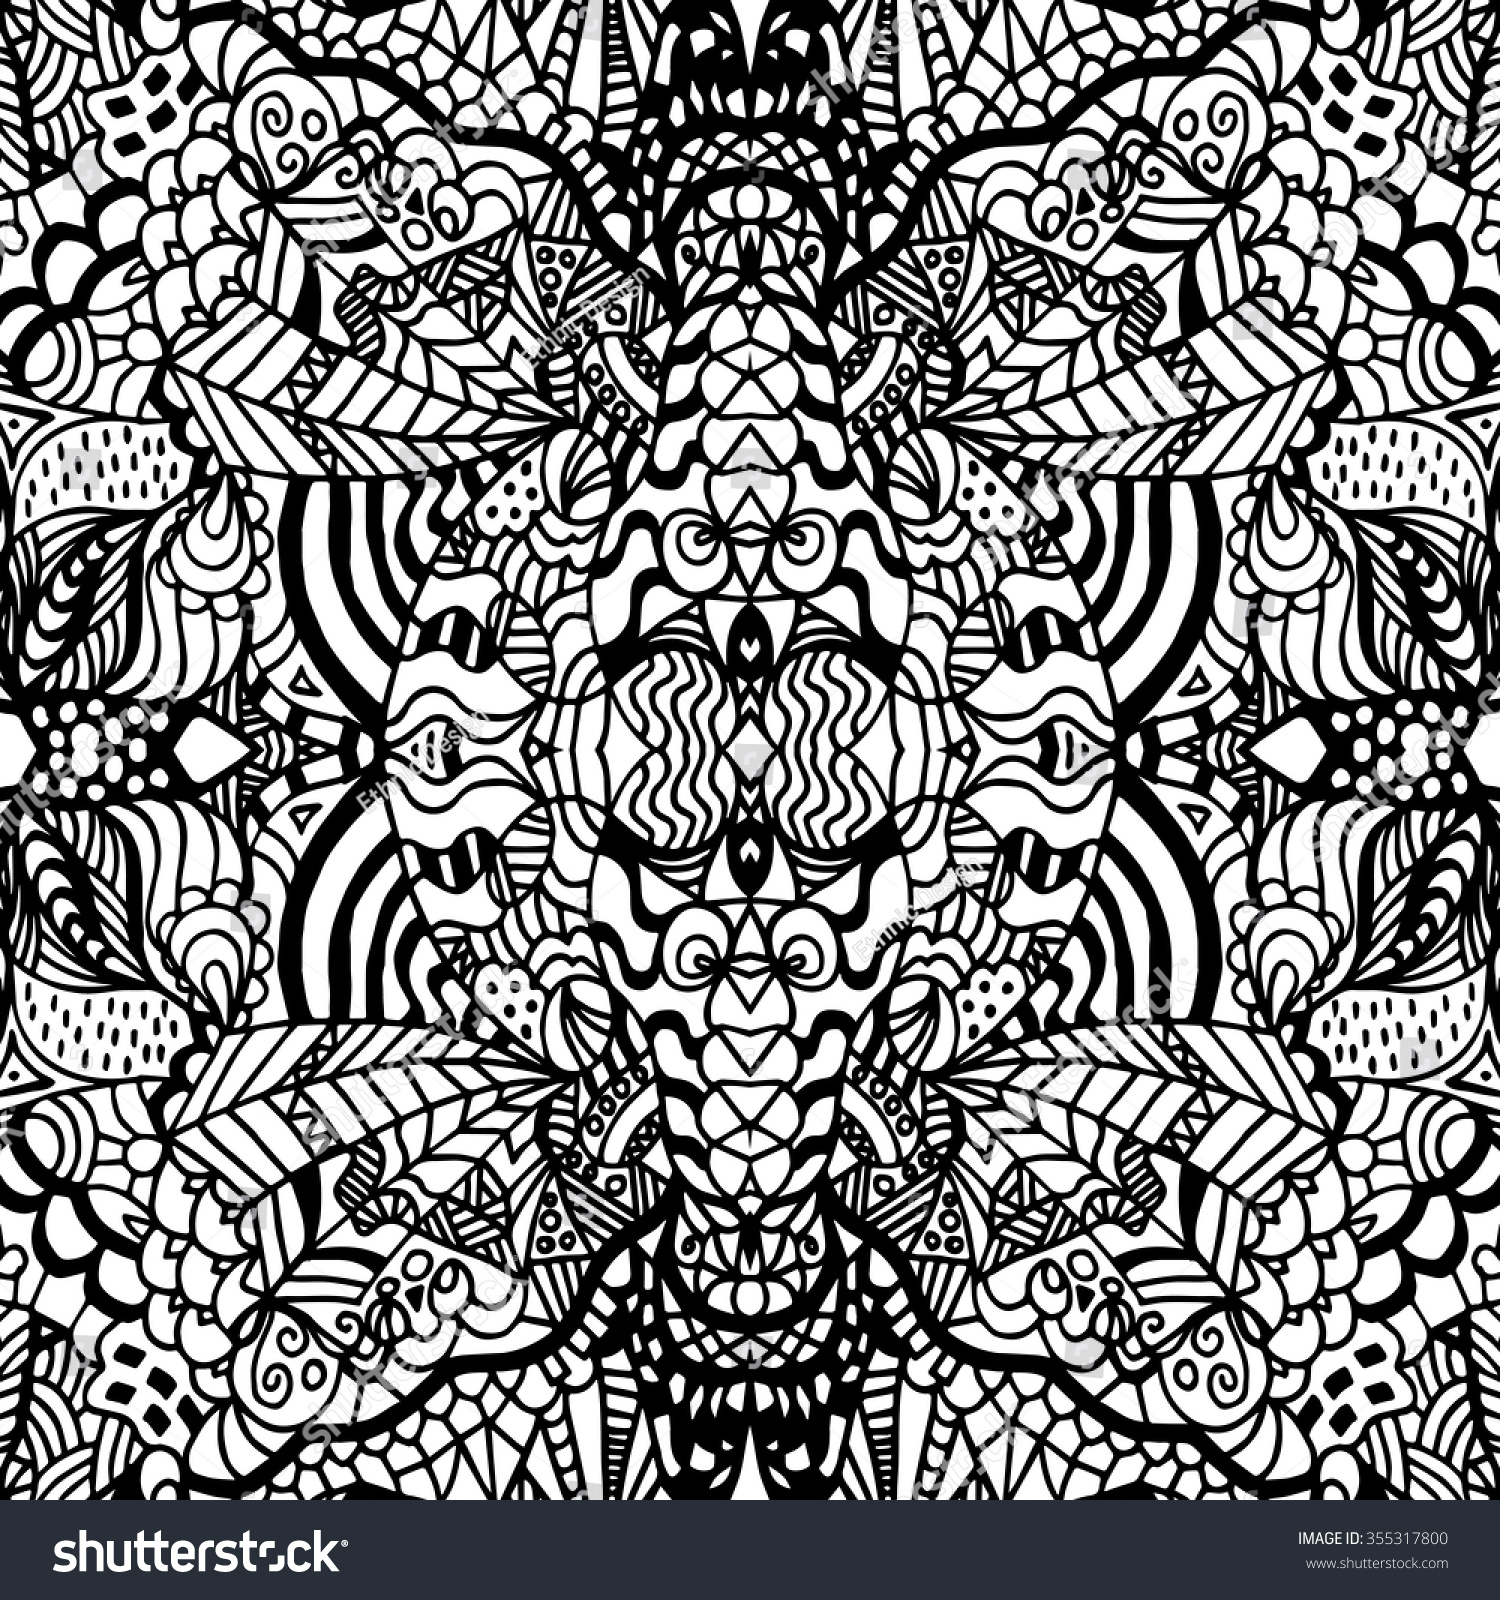 Adults colouring book pages - Adult Colouring Book Pages Vector Abstract Seamless Fantasy Pattern Hand Drawn Outline Geometrical Ornaments